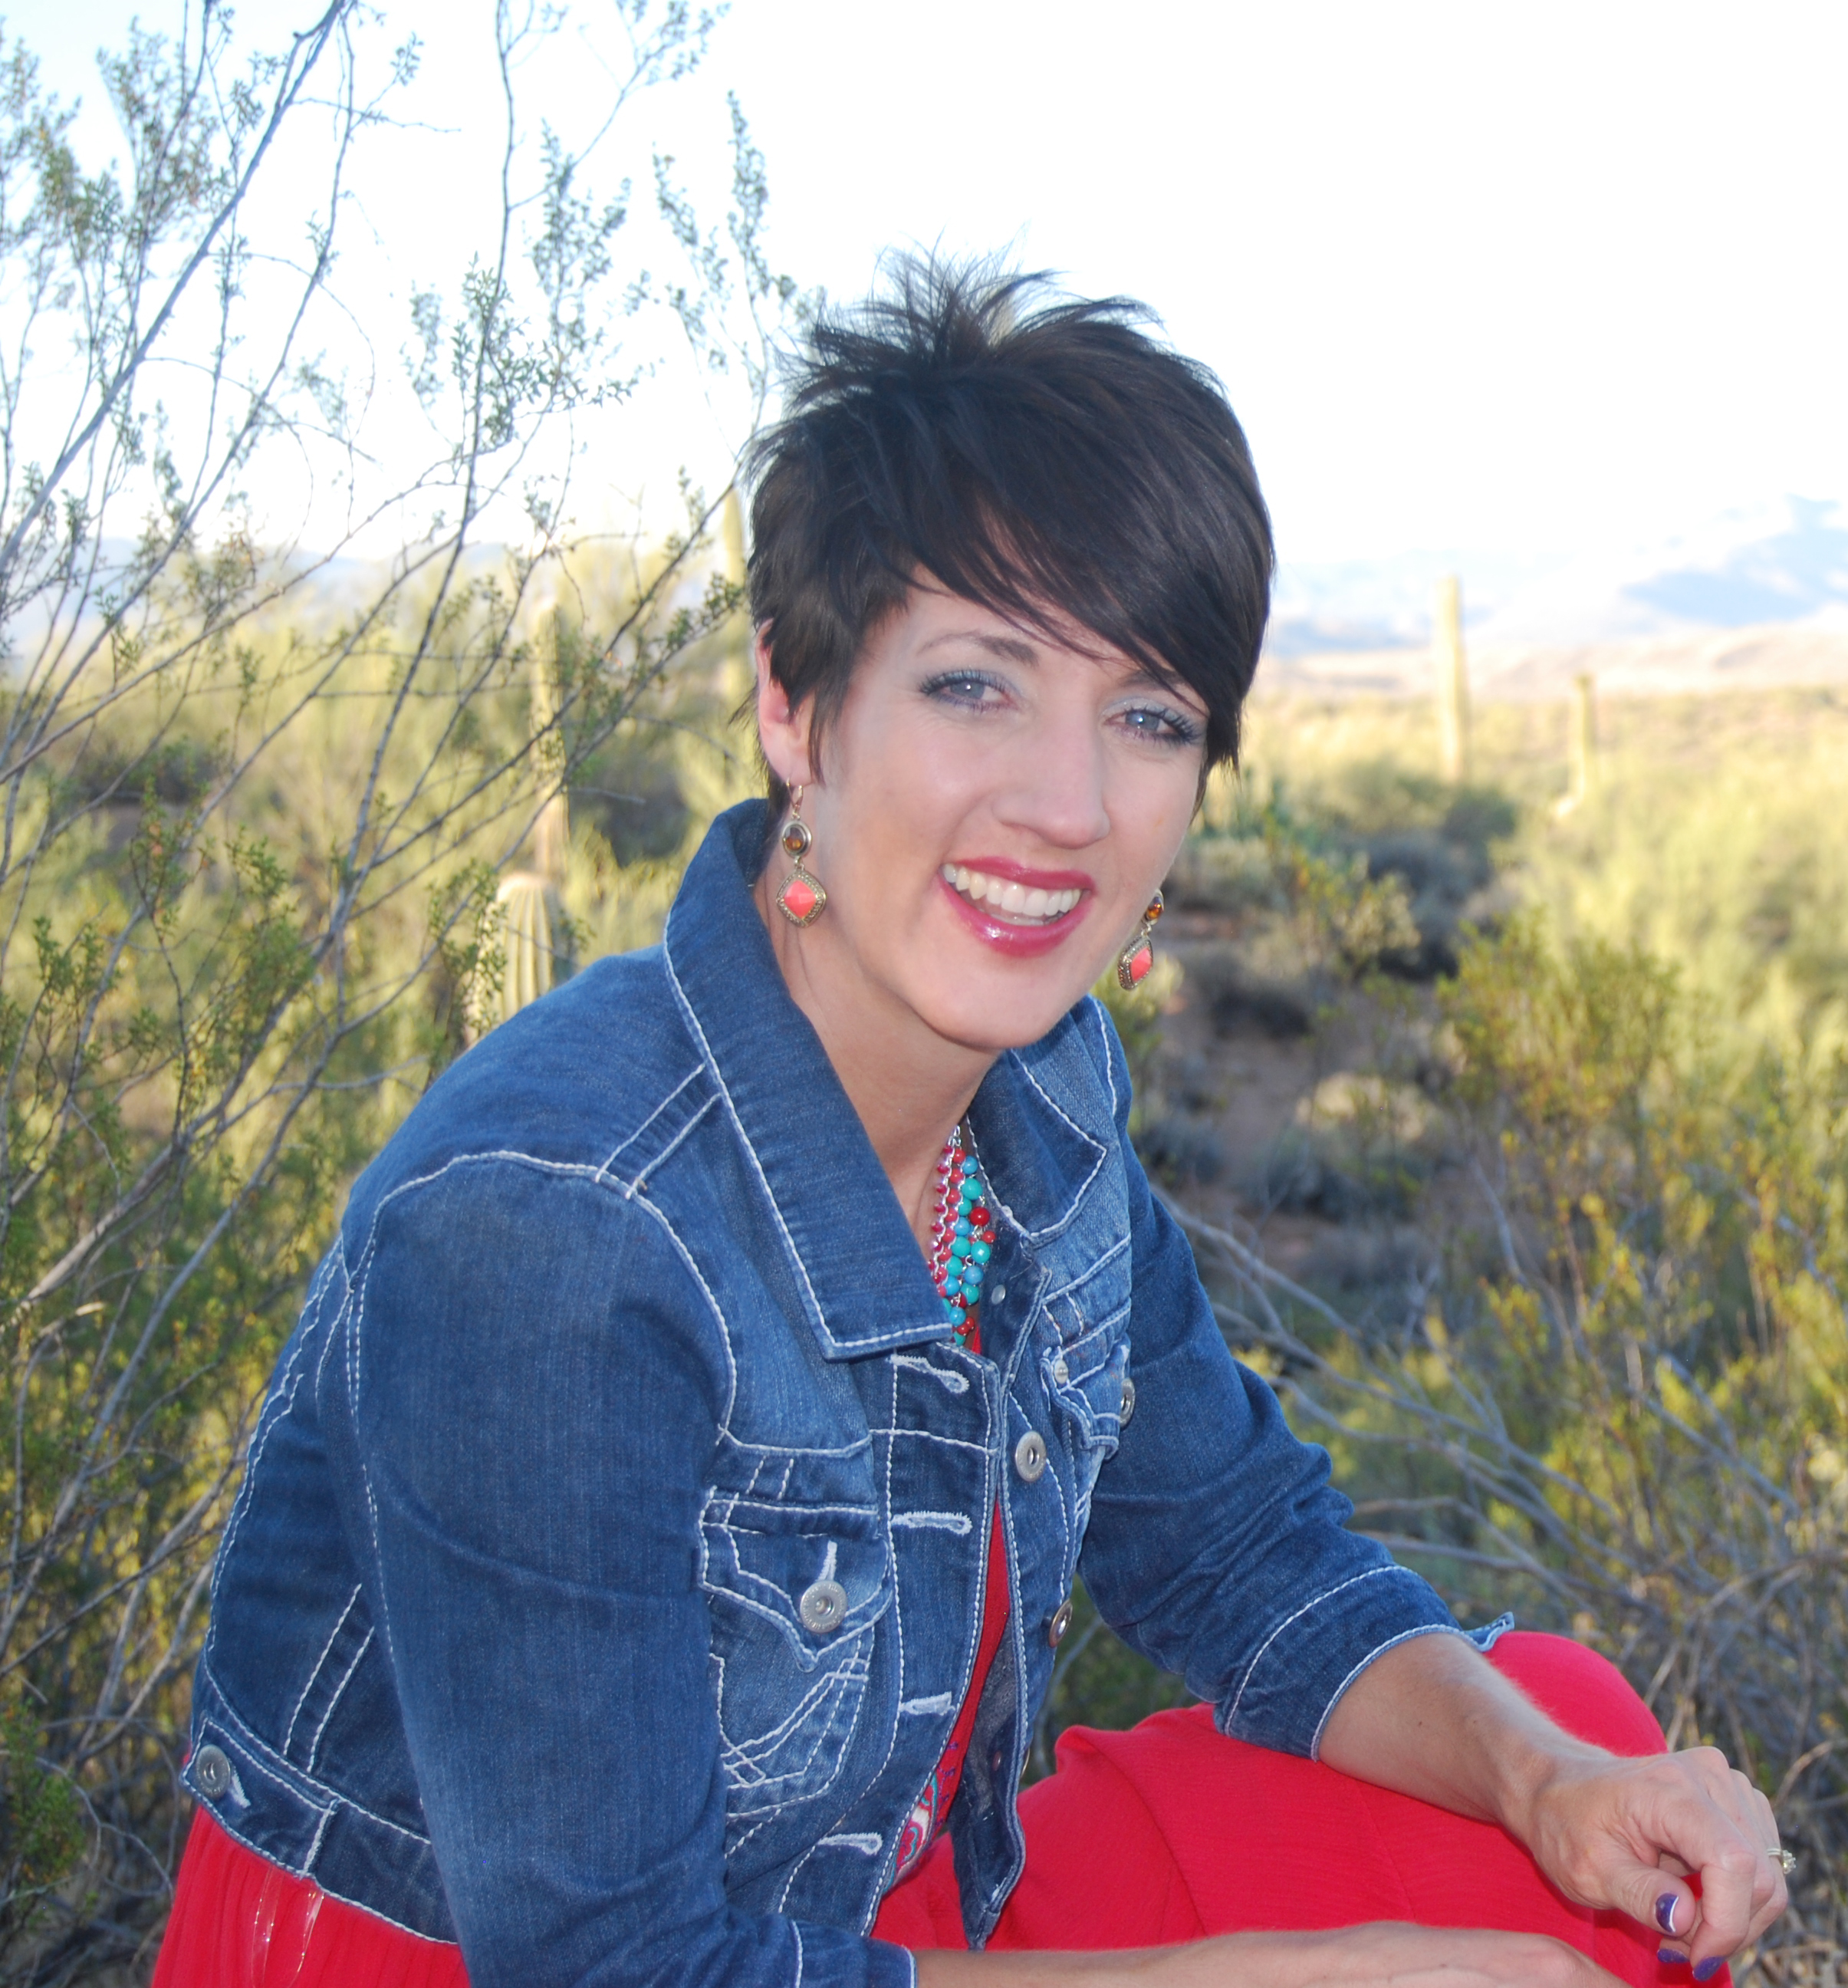 Wendi Jensen Writes First Book The Healing Questions Guide